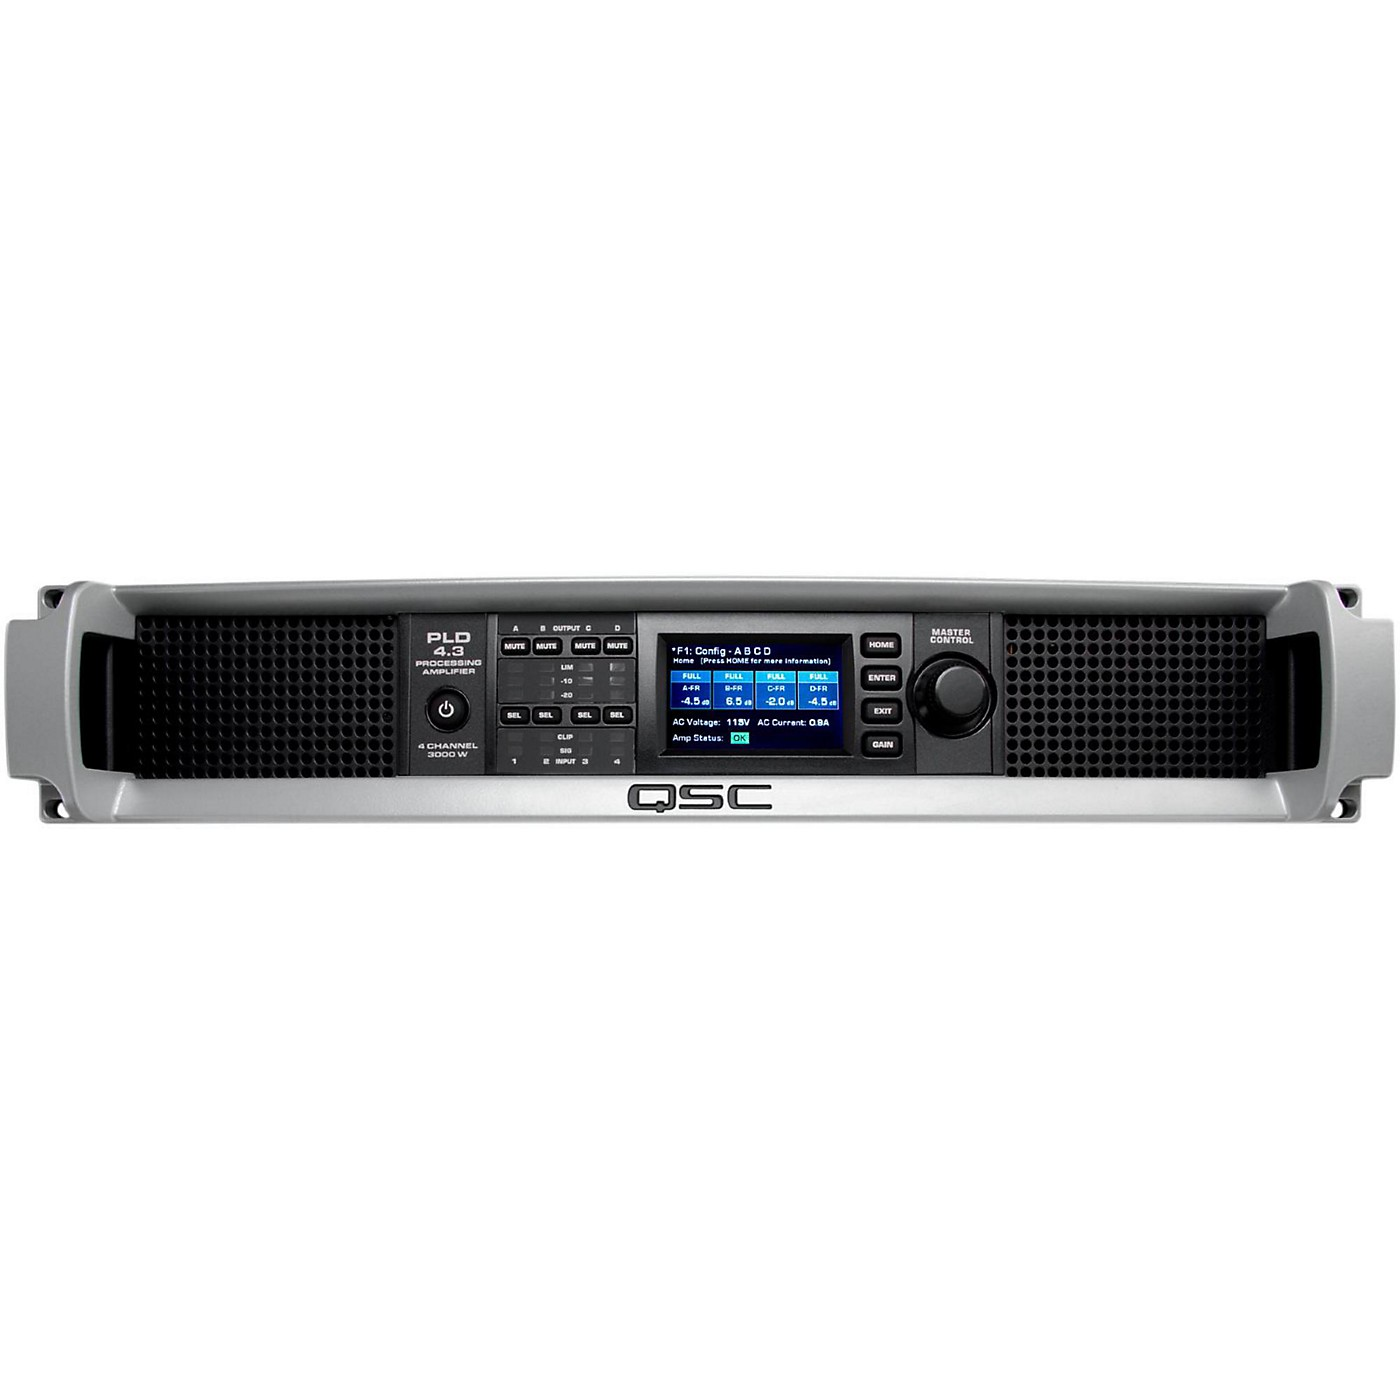 QSC PLD4.3 Multi-Channel System Processing Amplifier thumbnail